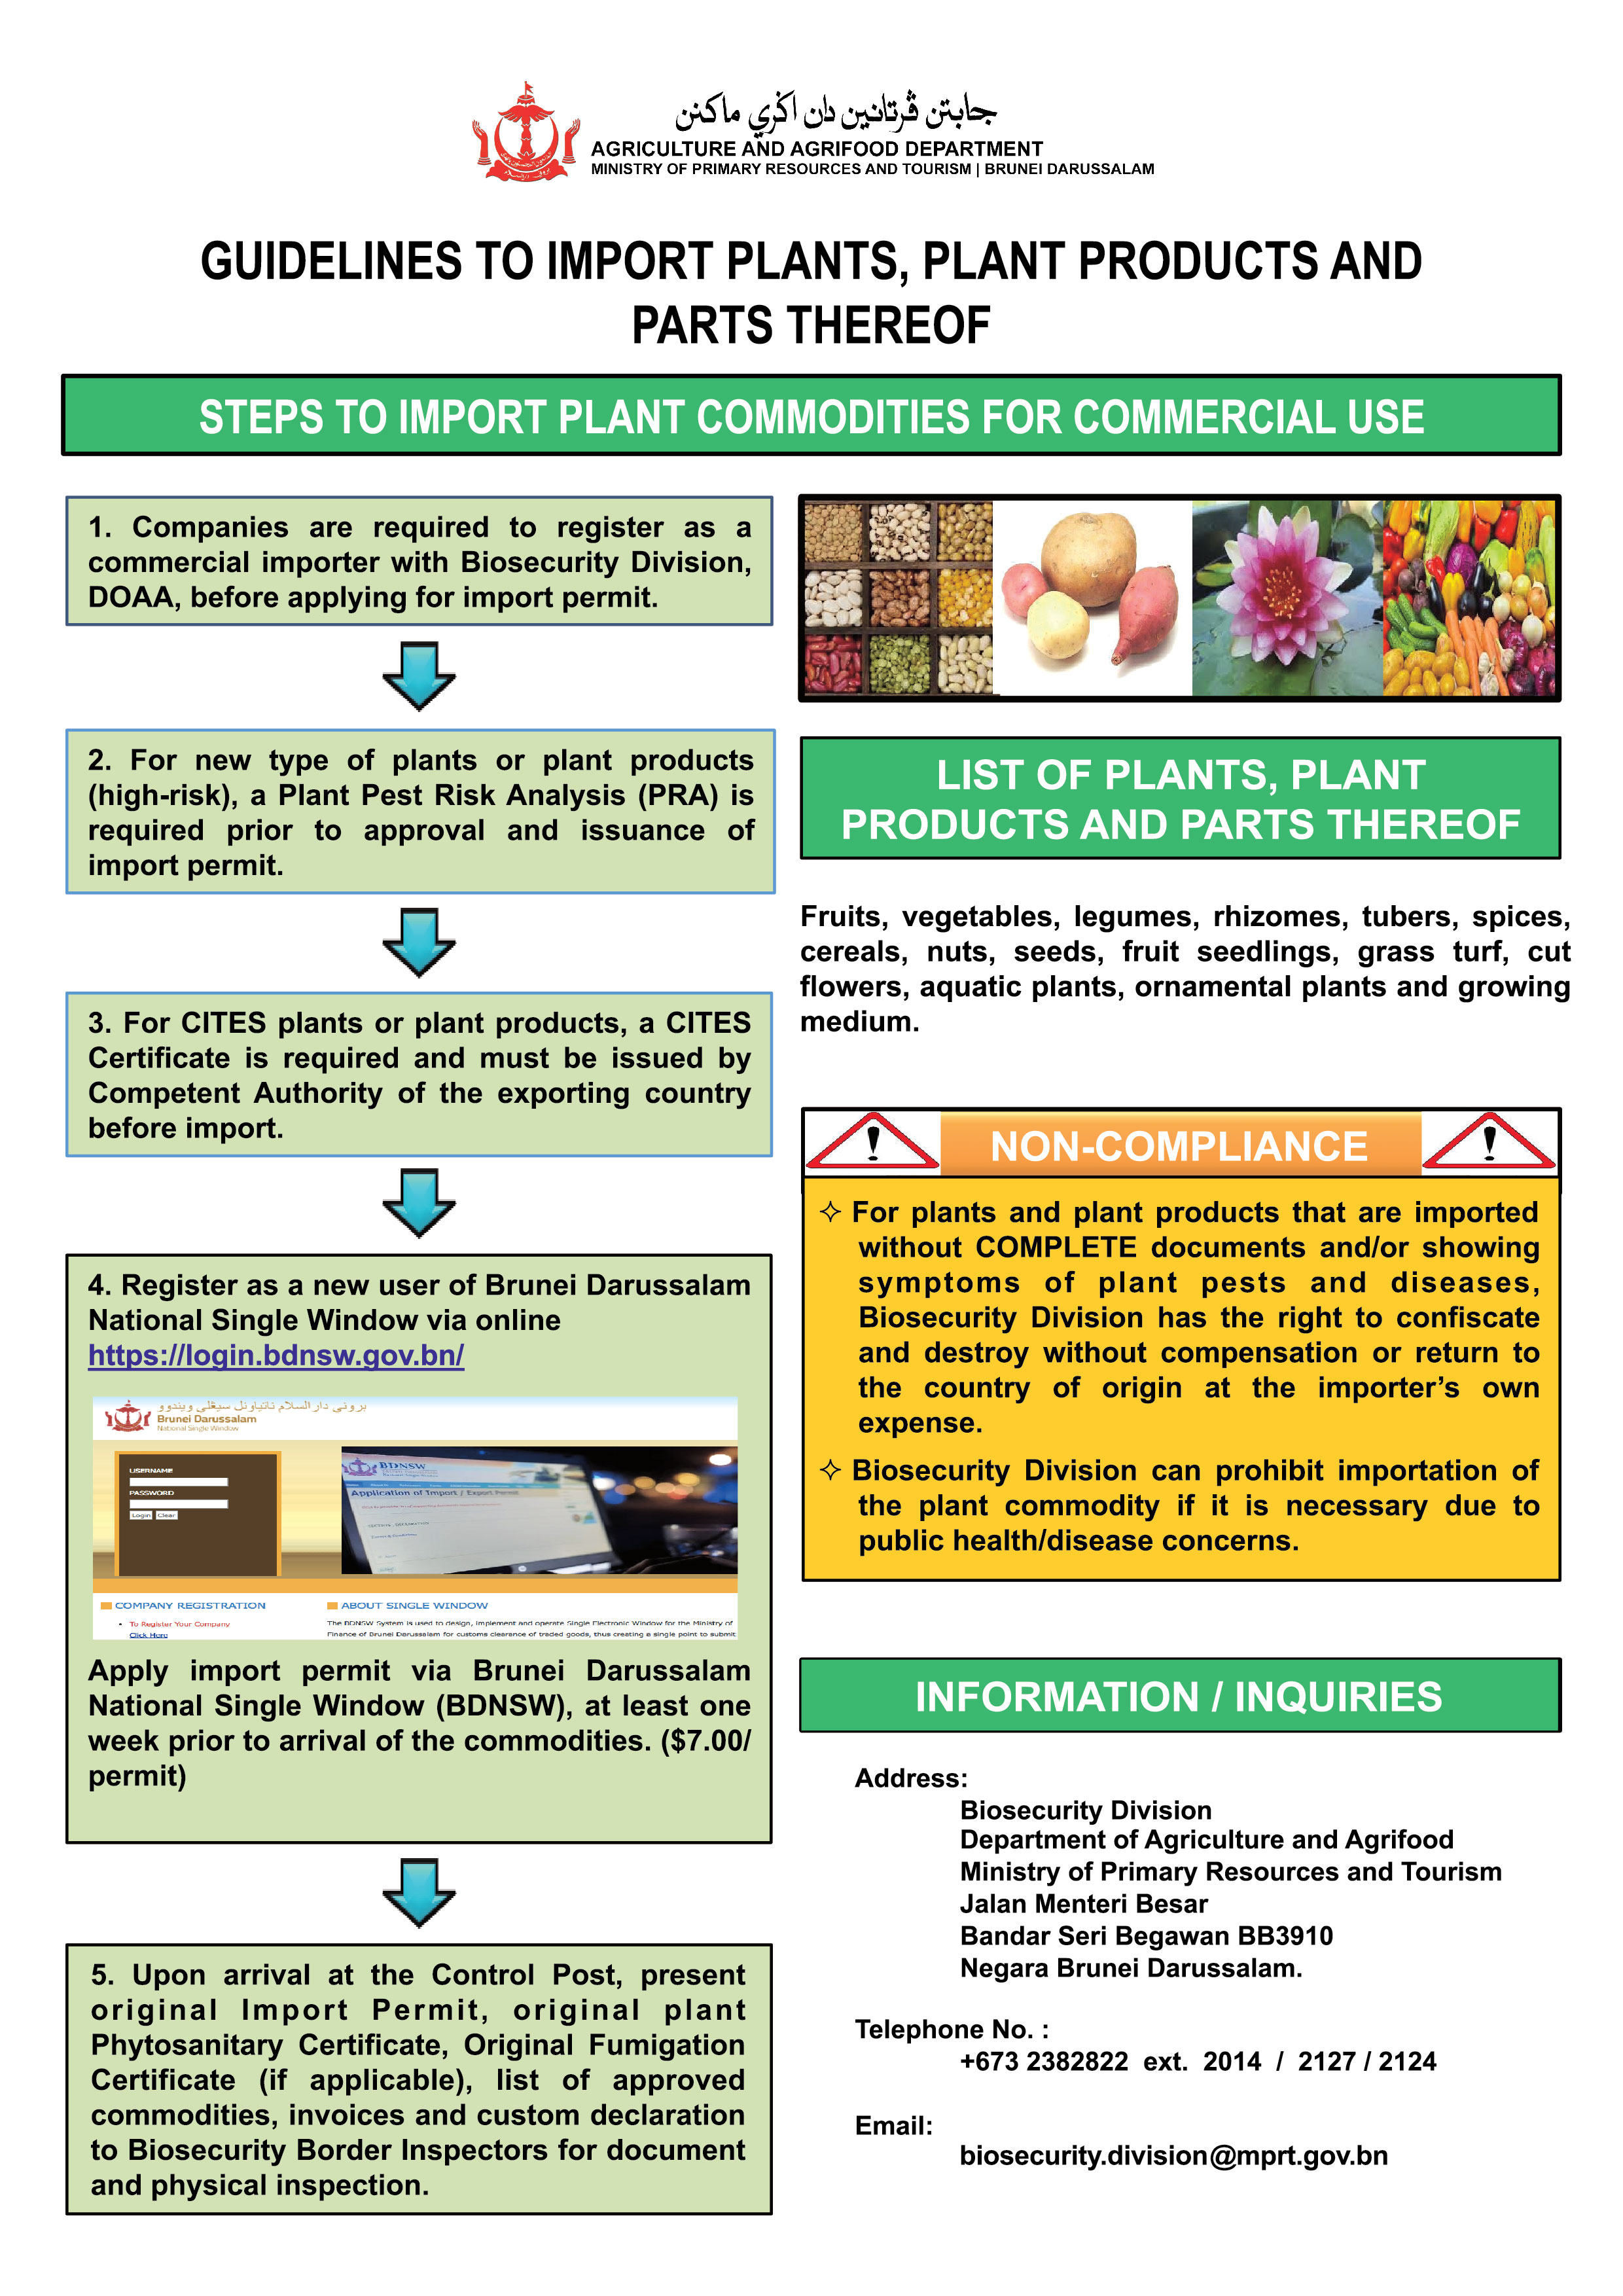 Agriculture and Agrifood Department - IMPORTATION OF AGROCHEMICALS